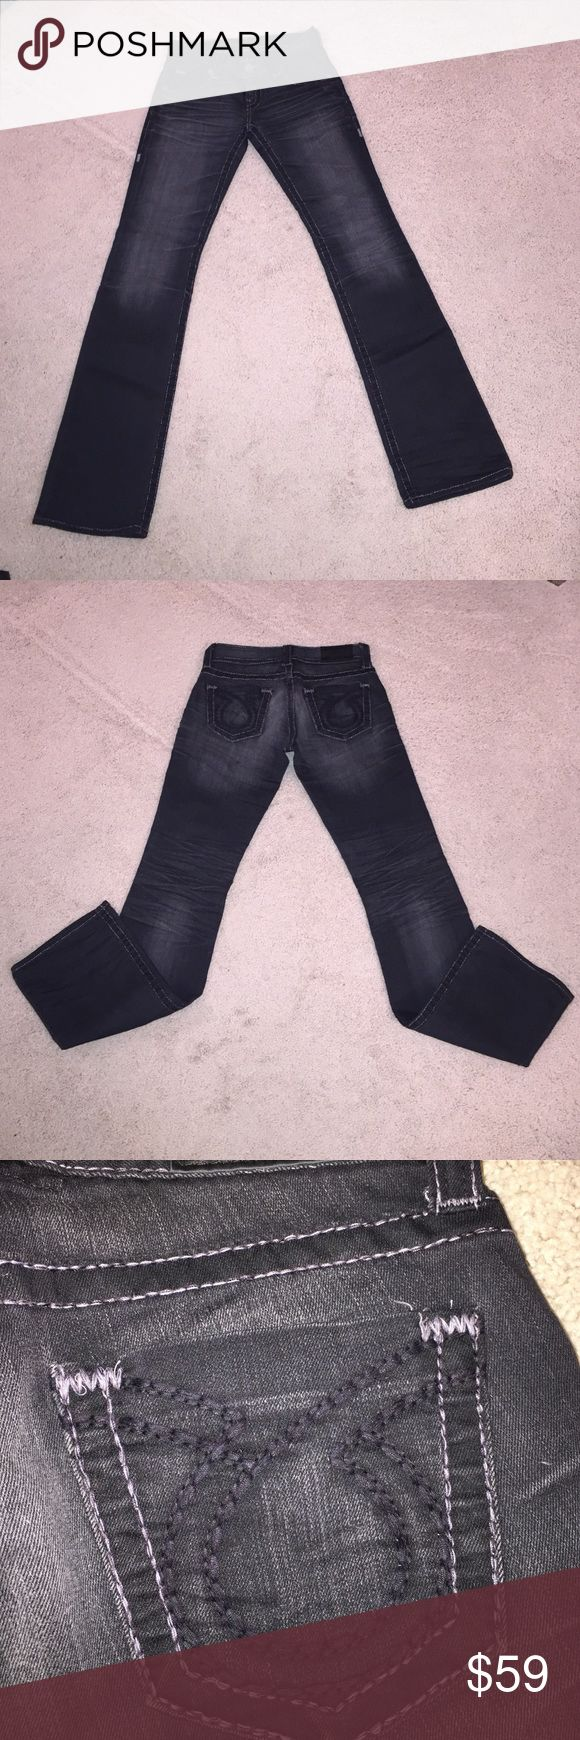 Big Star black bootcut Sophia jeans Big Star black bootcut jeans, grey stitching, excellent condition Big Star Pants Boot Cut & Flare